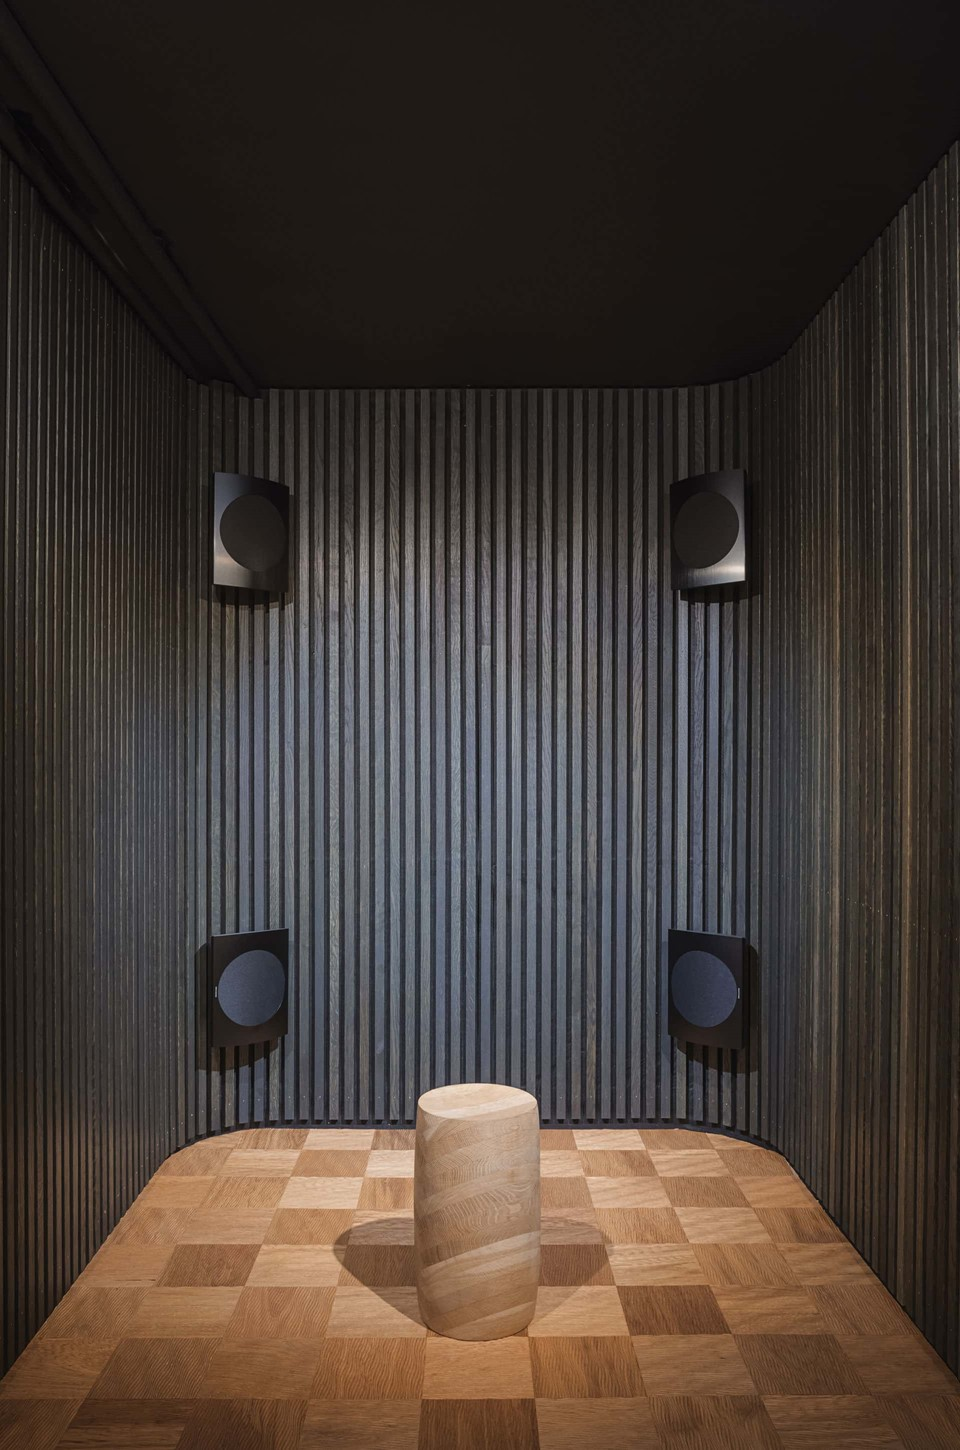 mejlborg-basement_aarhus-showroom_sound-room_dinesen.jpg